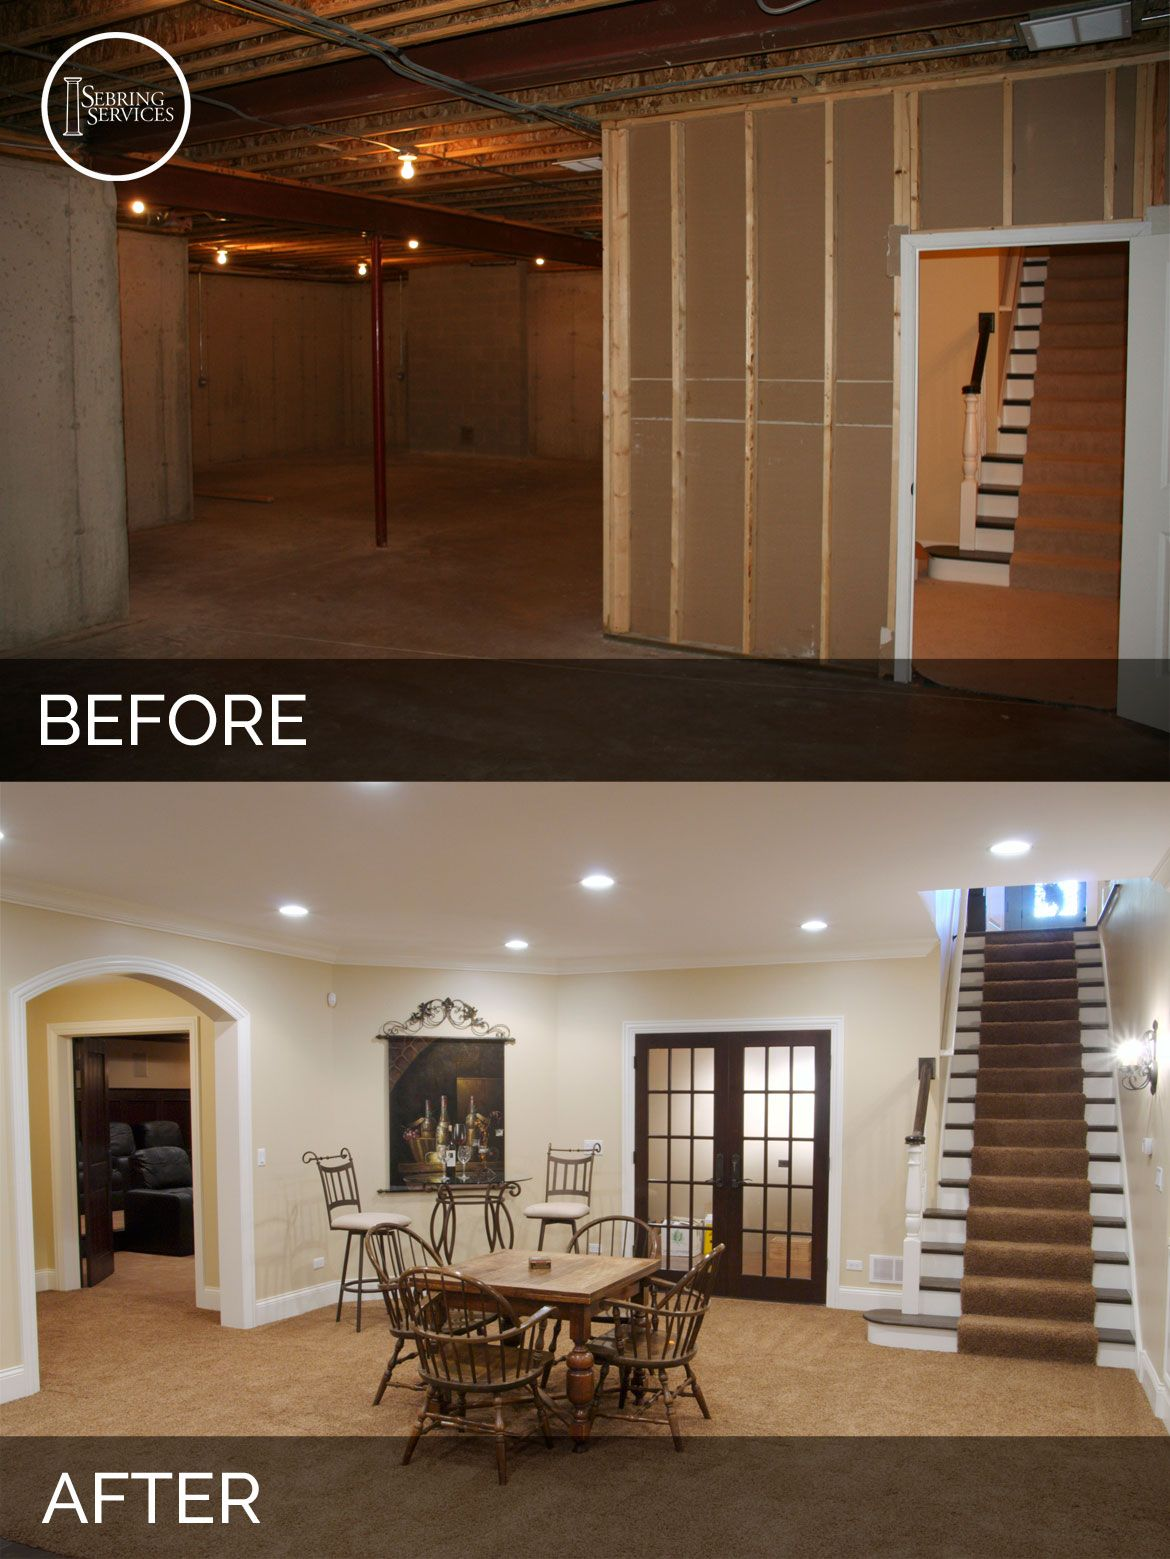 basement apartment before and after. Before and After Basement Remodeling  Sebring Services Steve Elaine s Pictures Basements